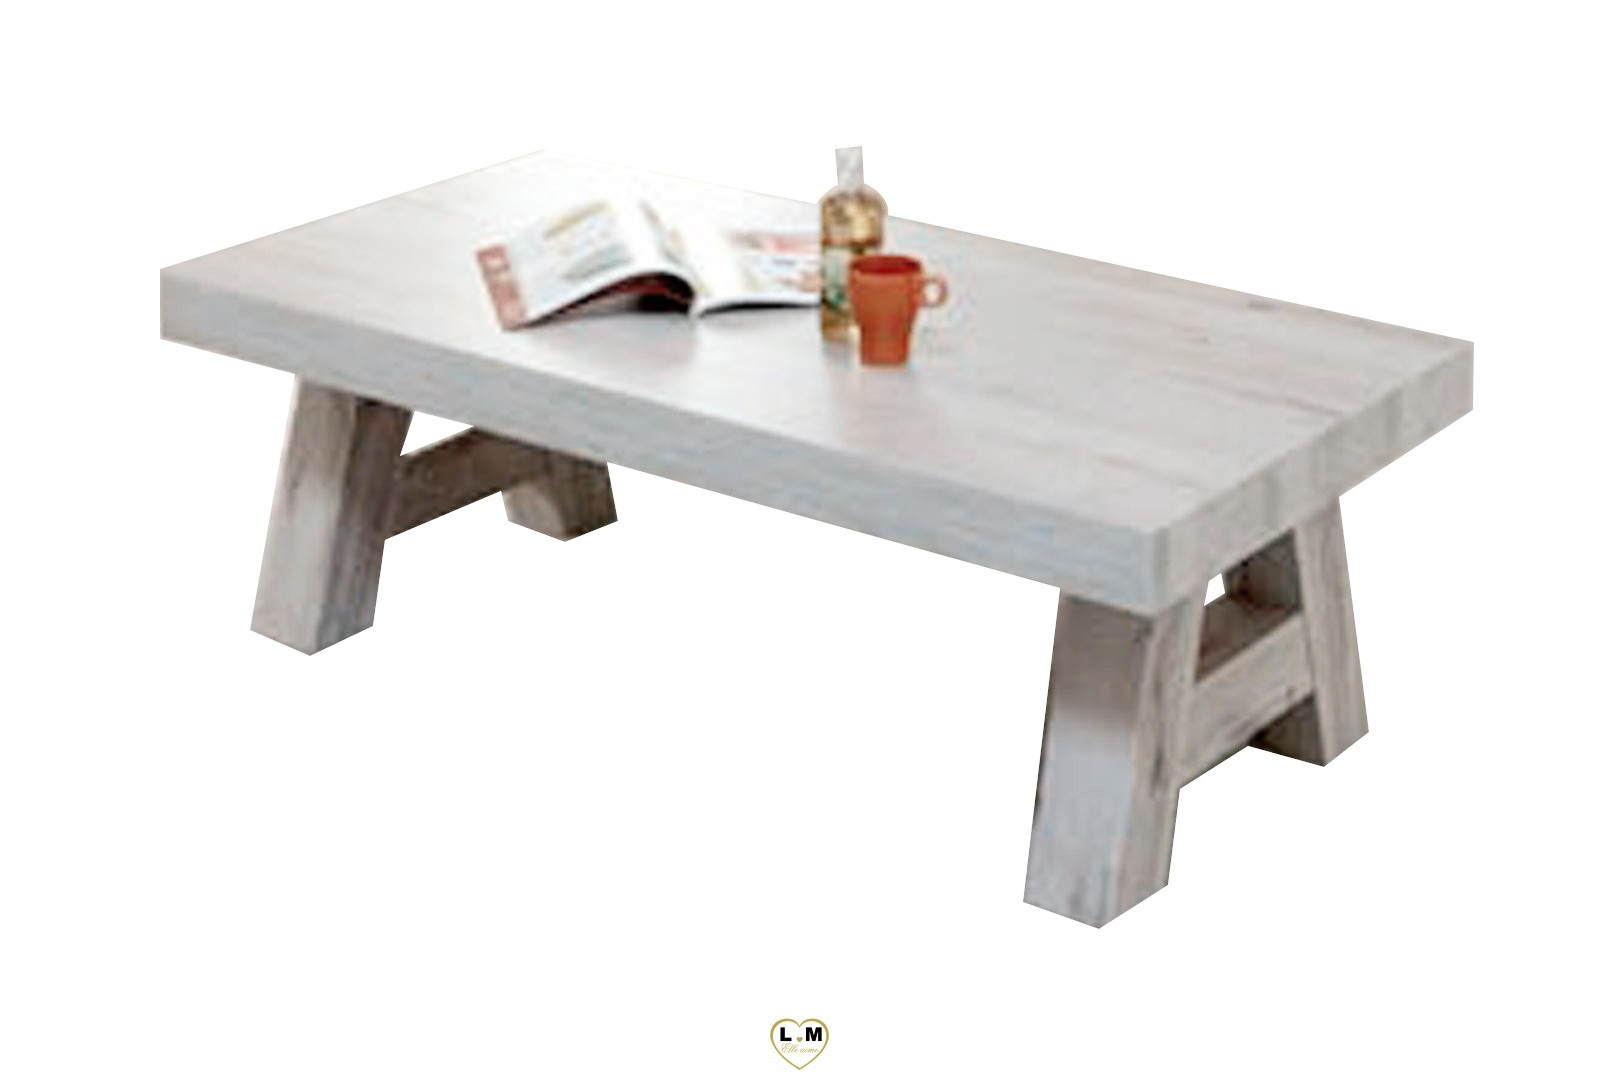 Table salle a manger carre table a manger carr 14 feb 18 Table a manger carre extensible